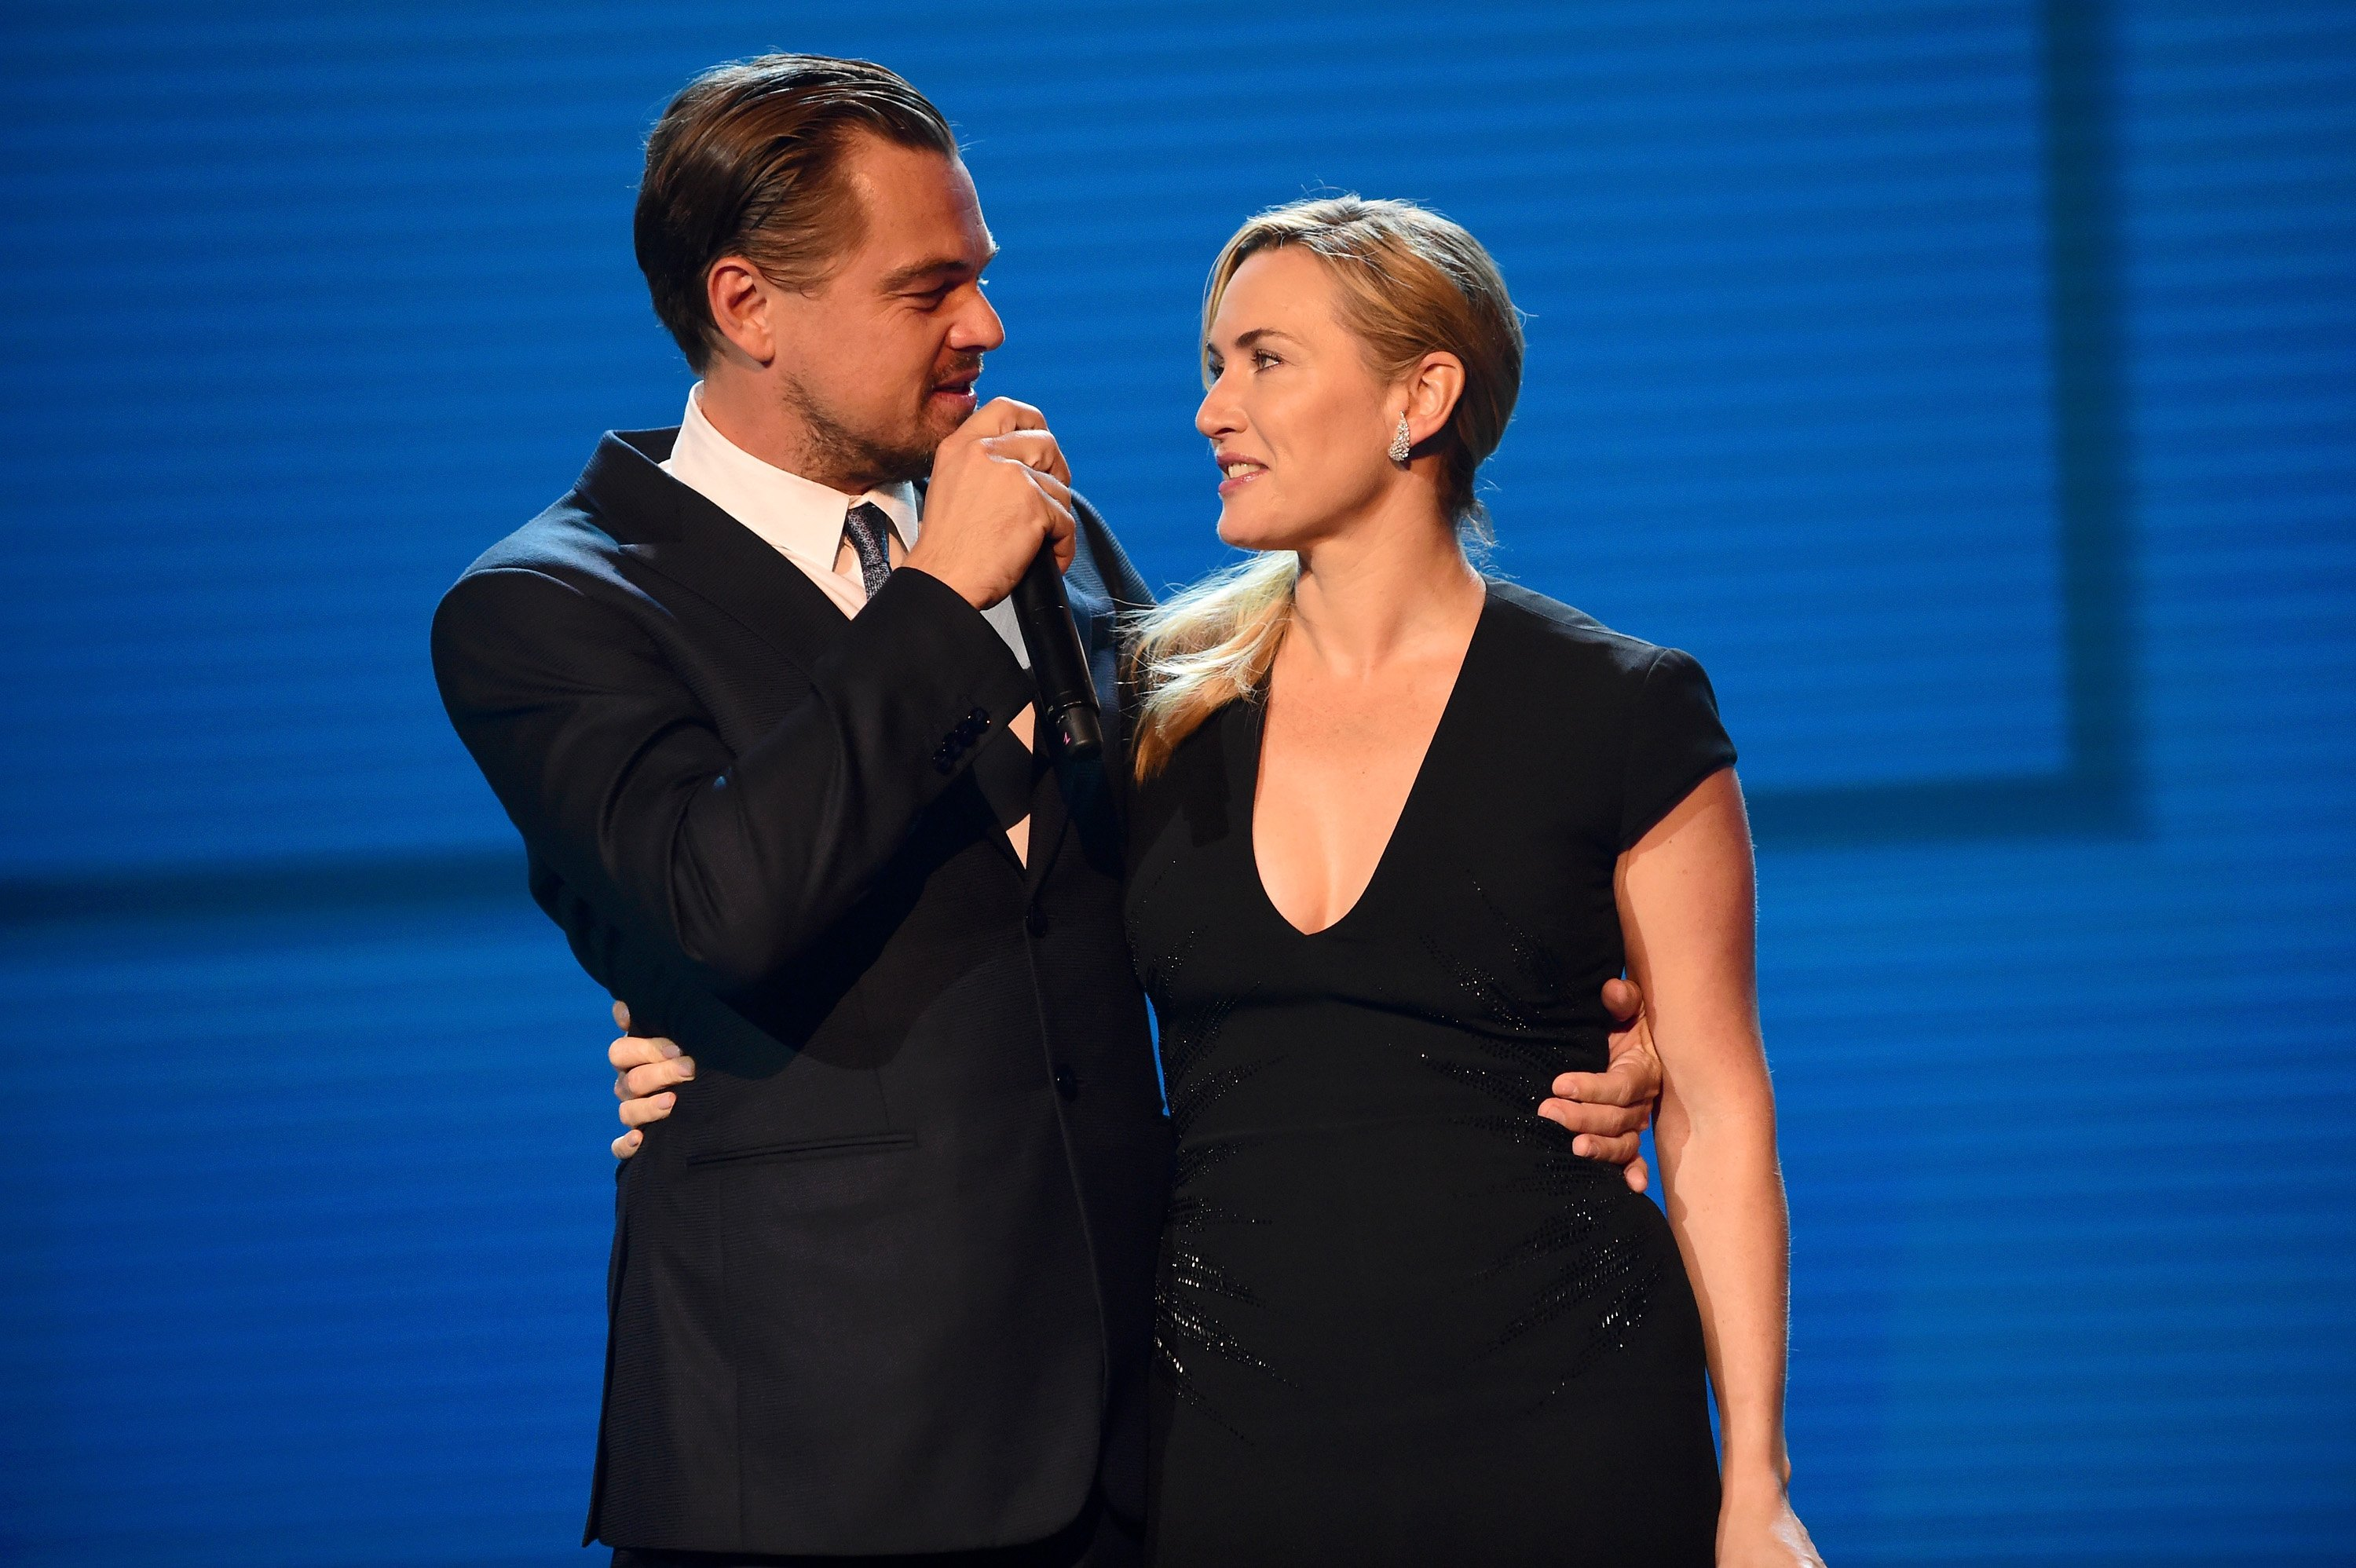 Kate Winslet and Leonardo DiCaprio on stage at the Leonardo DiCaprio Foundation's 4th Annual Saint-Tropez Gala on July 26, 2017. | Photo: Getty Images